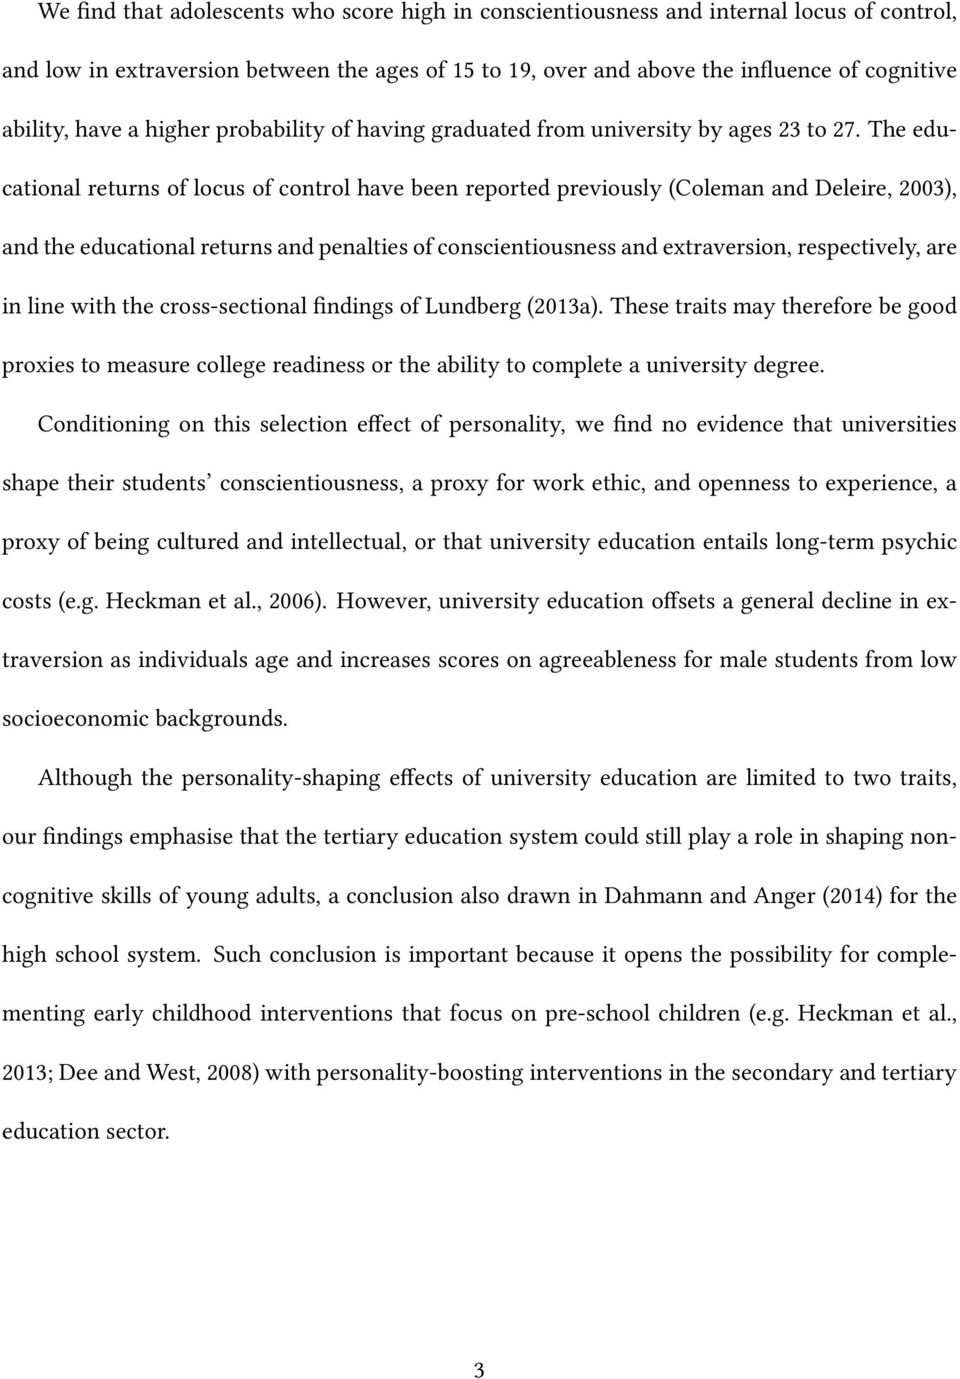 The educational returns of locus of control have been reported previously (Coleman and Deleire, 2003), and the educational returns and penalties of conscientiousness and extraversion, respectively,